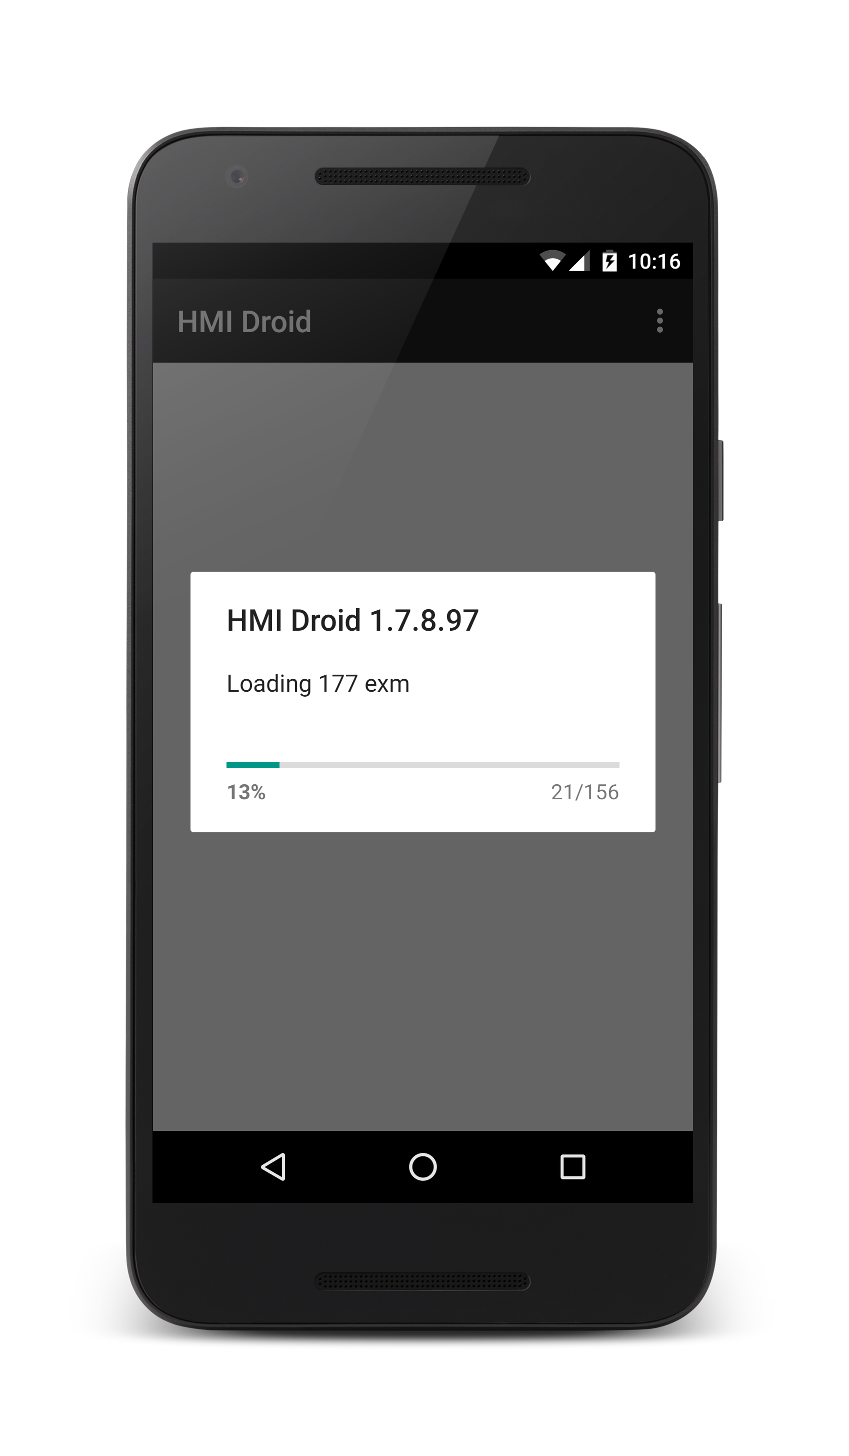 HMI Droid - Launch screen